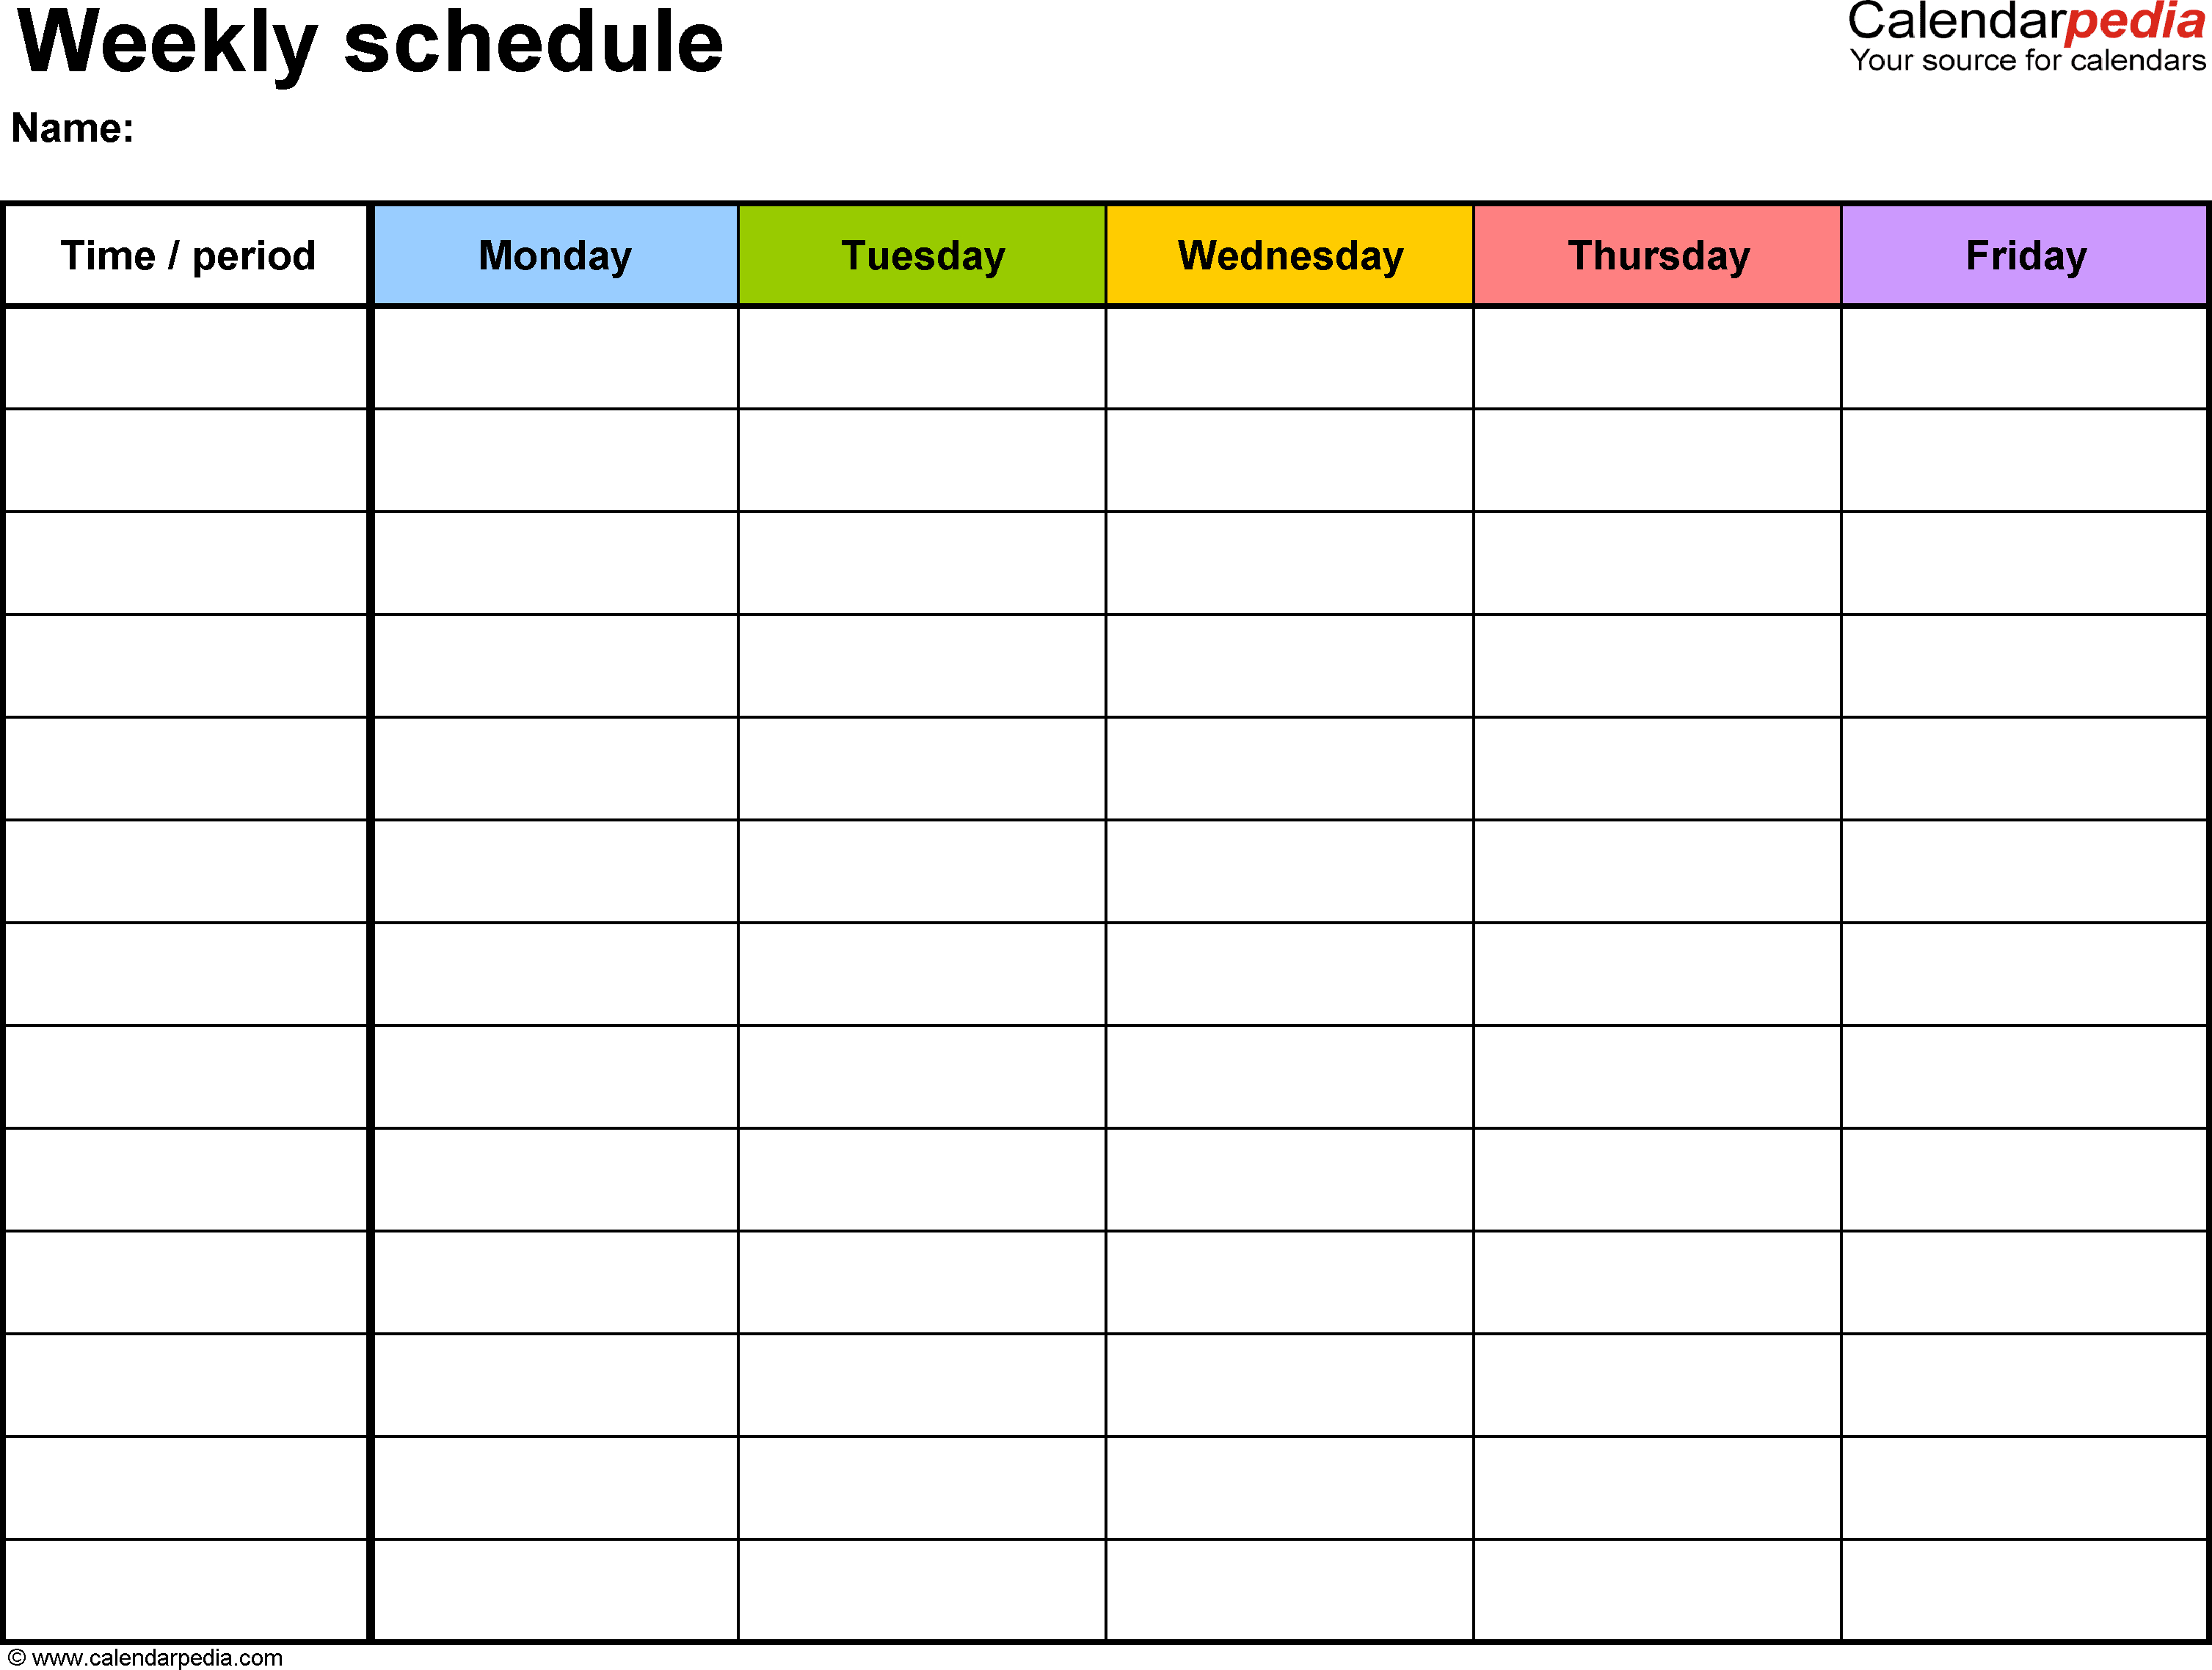 Free Weekly Schedule Templates For Word - 18 Templates regarding Blank Calendar Printable 5 Day